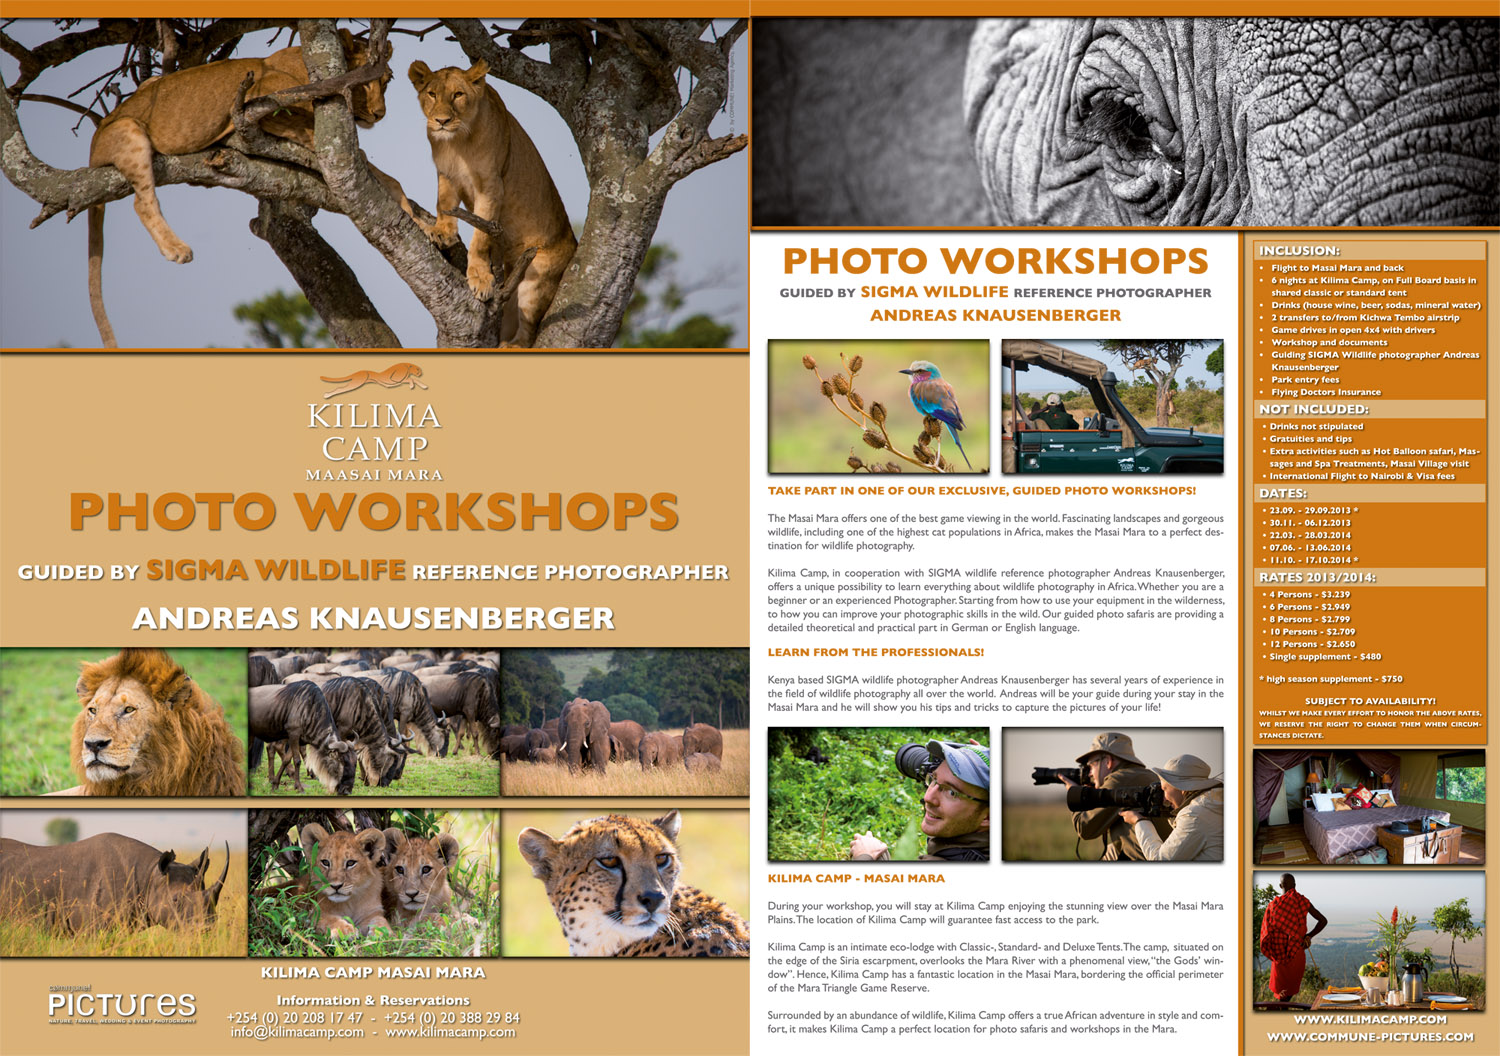 A4 Flyer for Photo Workshops